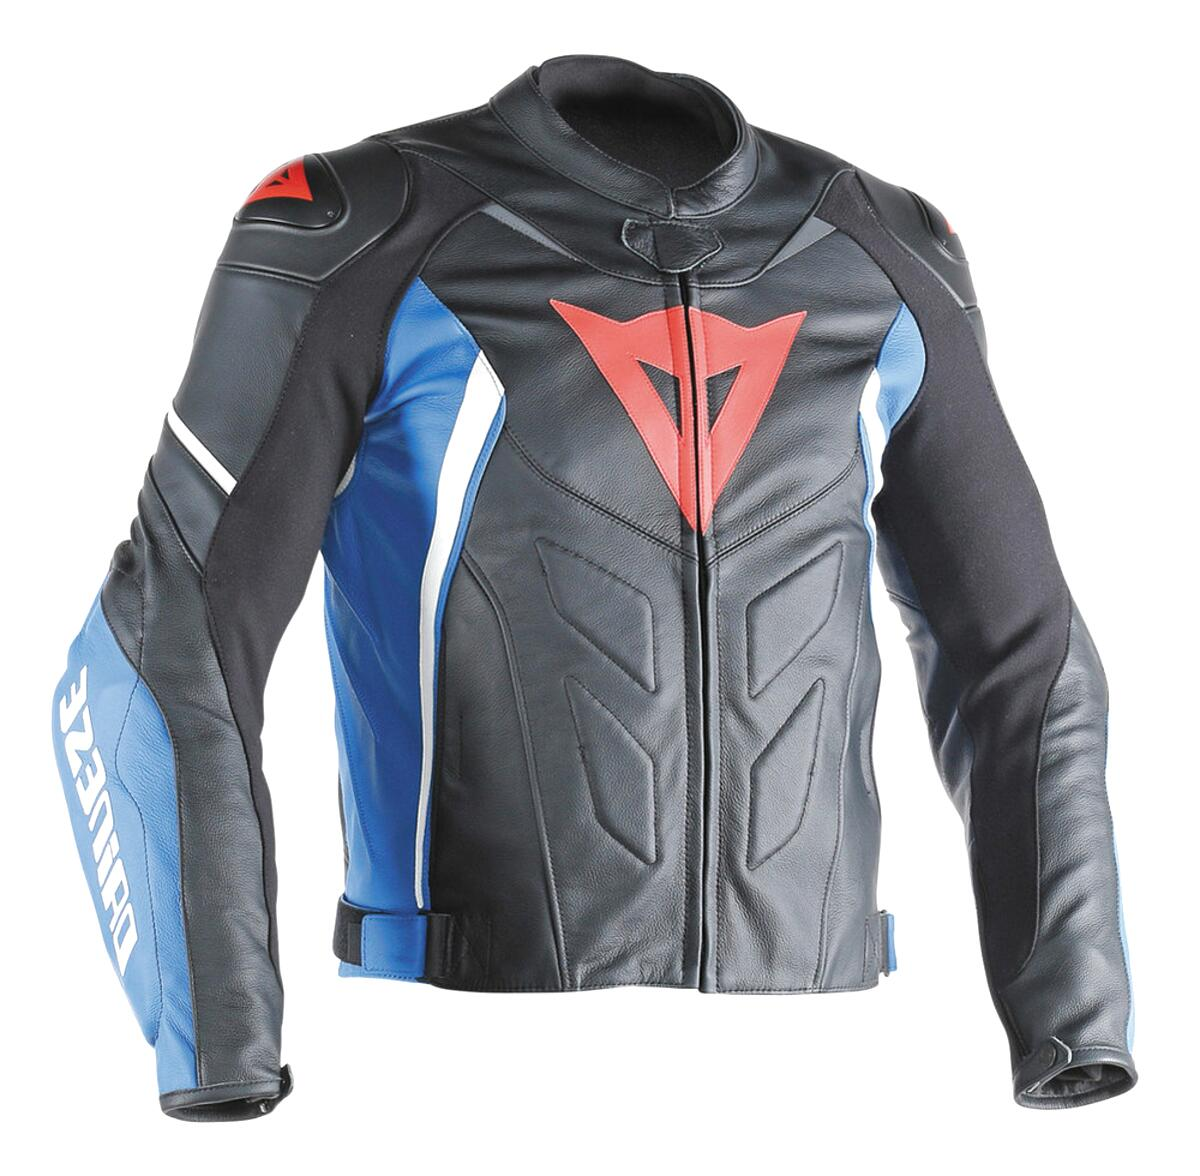 d1 jacket for sale